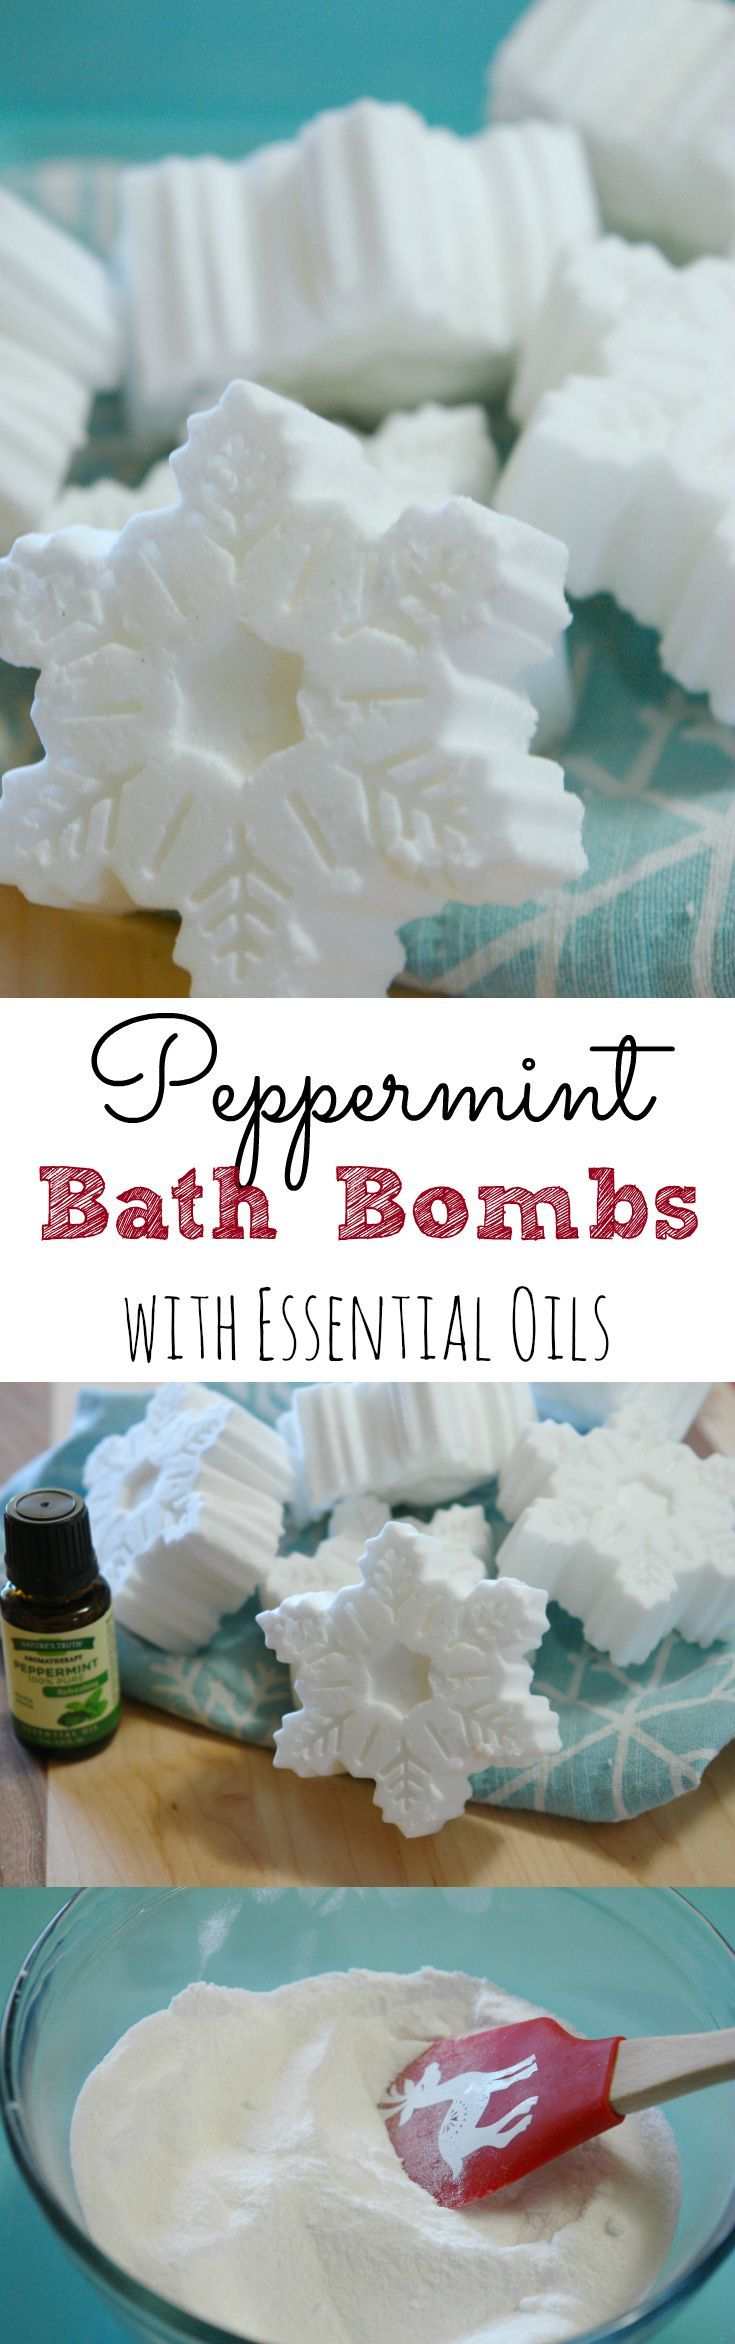 Easy, DIY peppermint bath bombs using essential oils. They make the perfect homemade gift! #shop #StimulateTheSenses #ad